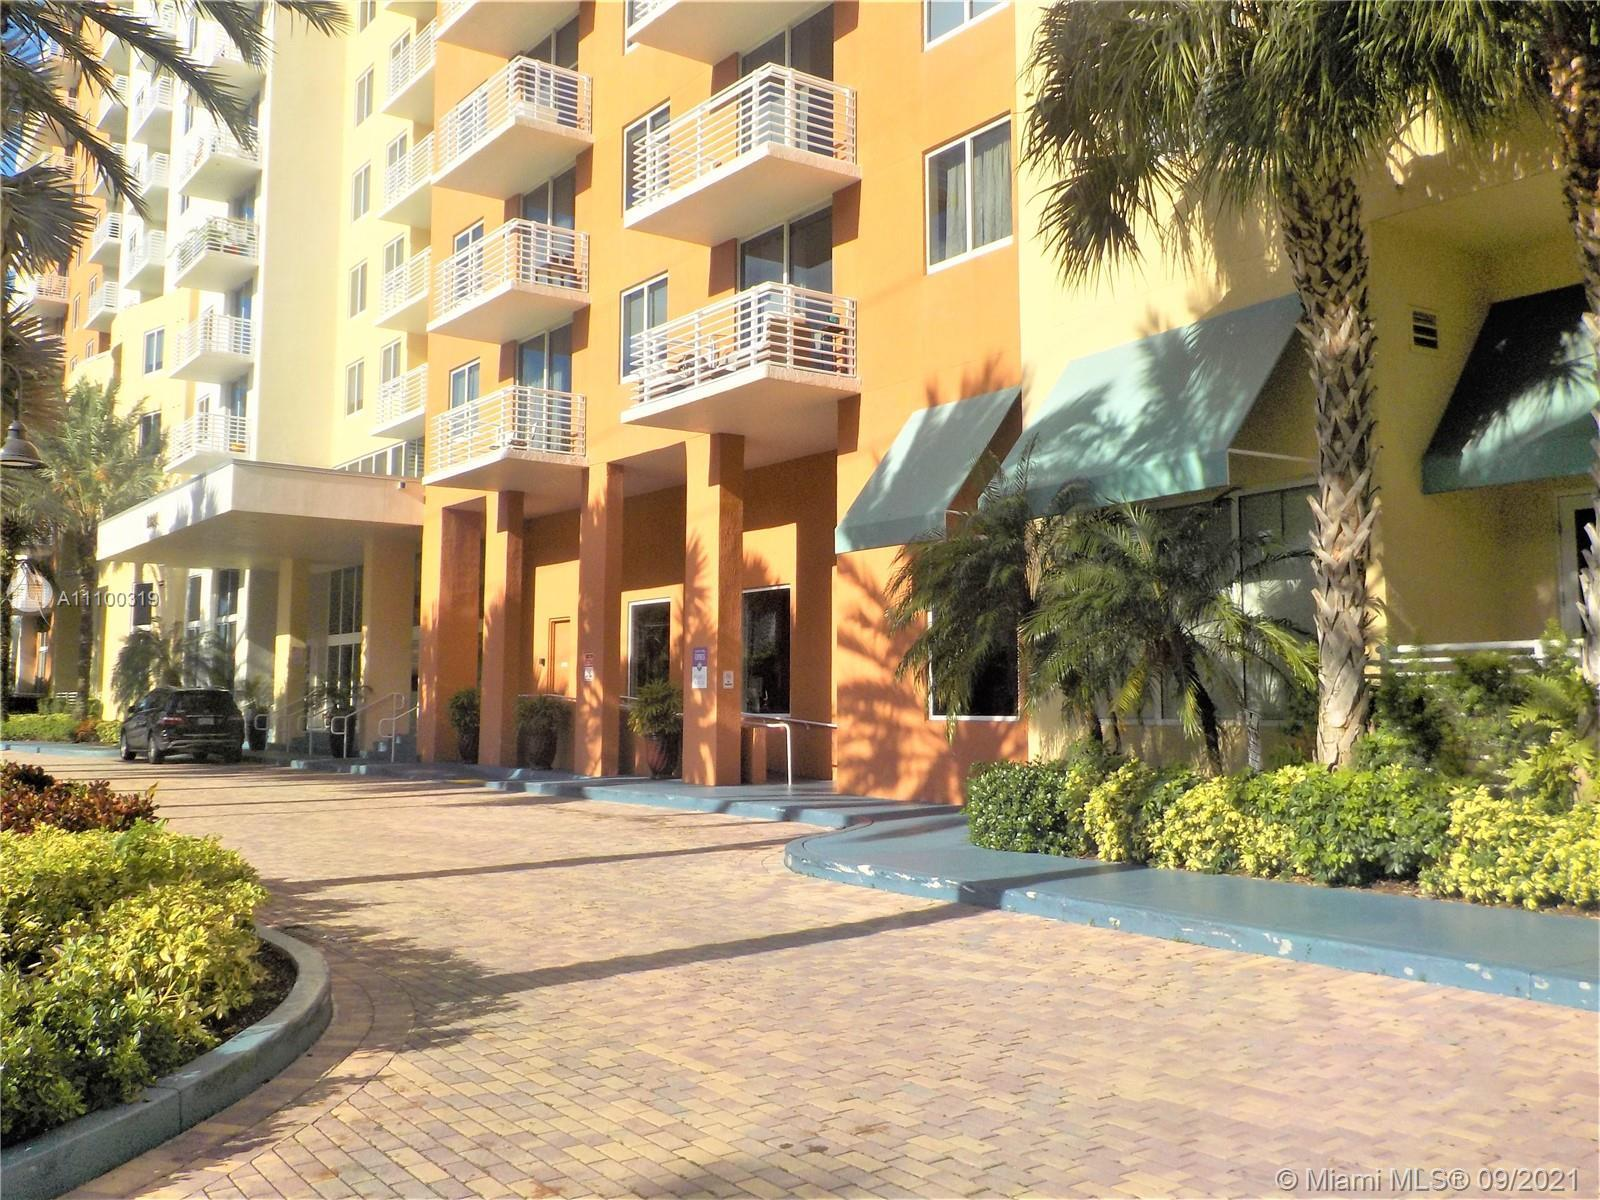 This 2/2 is located in a modern building in the heart of Aventura. Spacious unit with views of the r